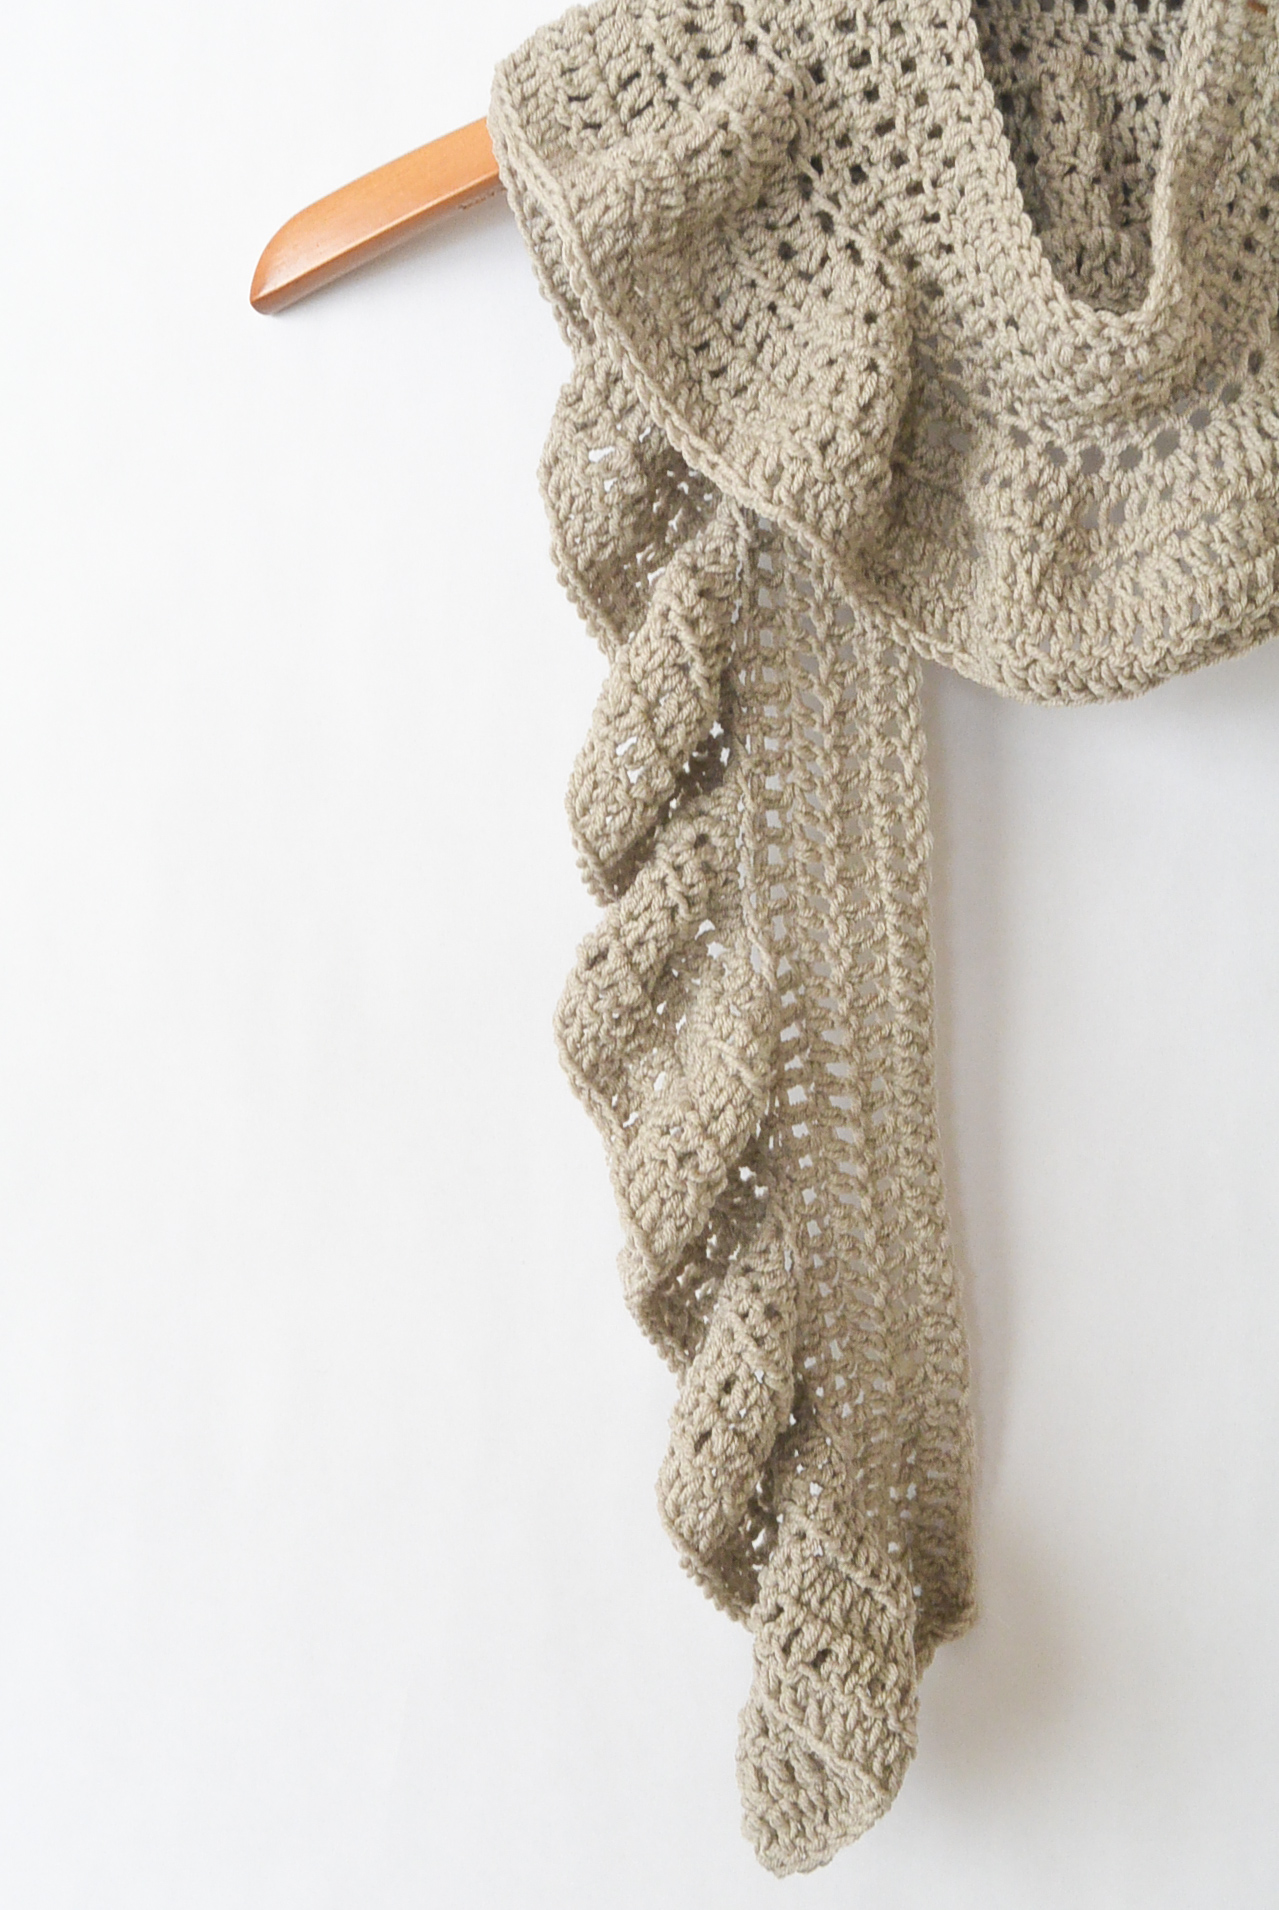 Merino Crocheted Ruffle Scarf Pattern – Mama In A Stitch